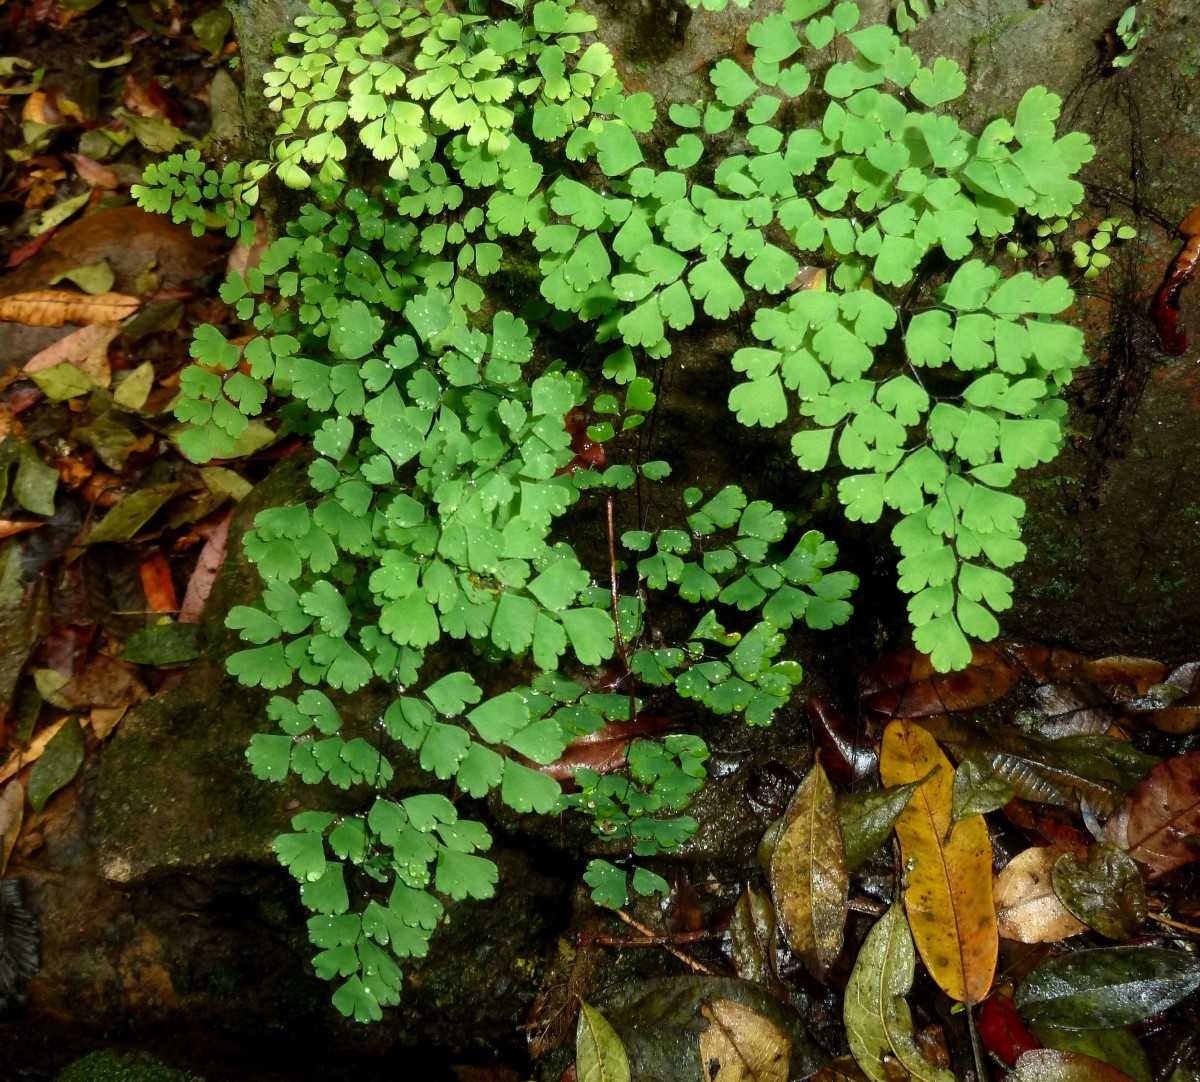 Plant maidenhair fern in wet locations for delicate foliage.